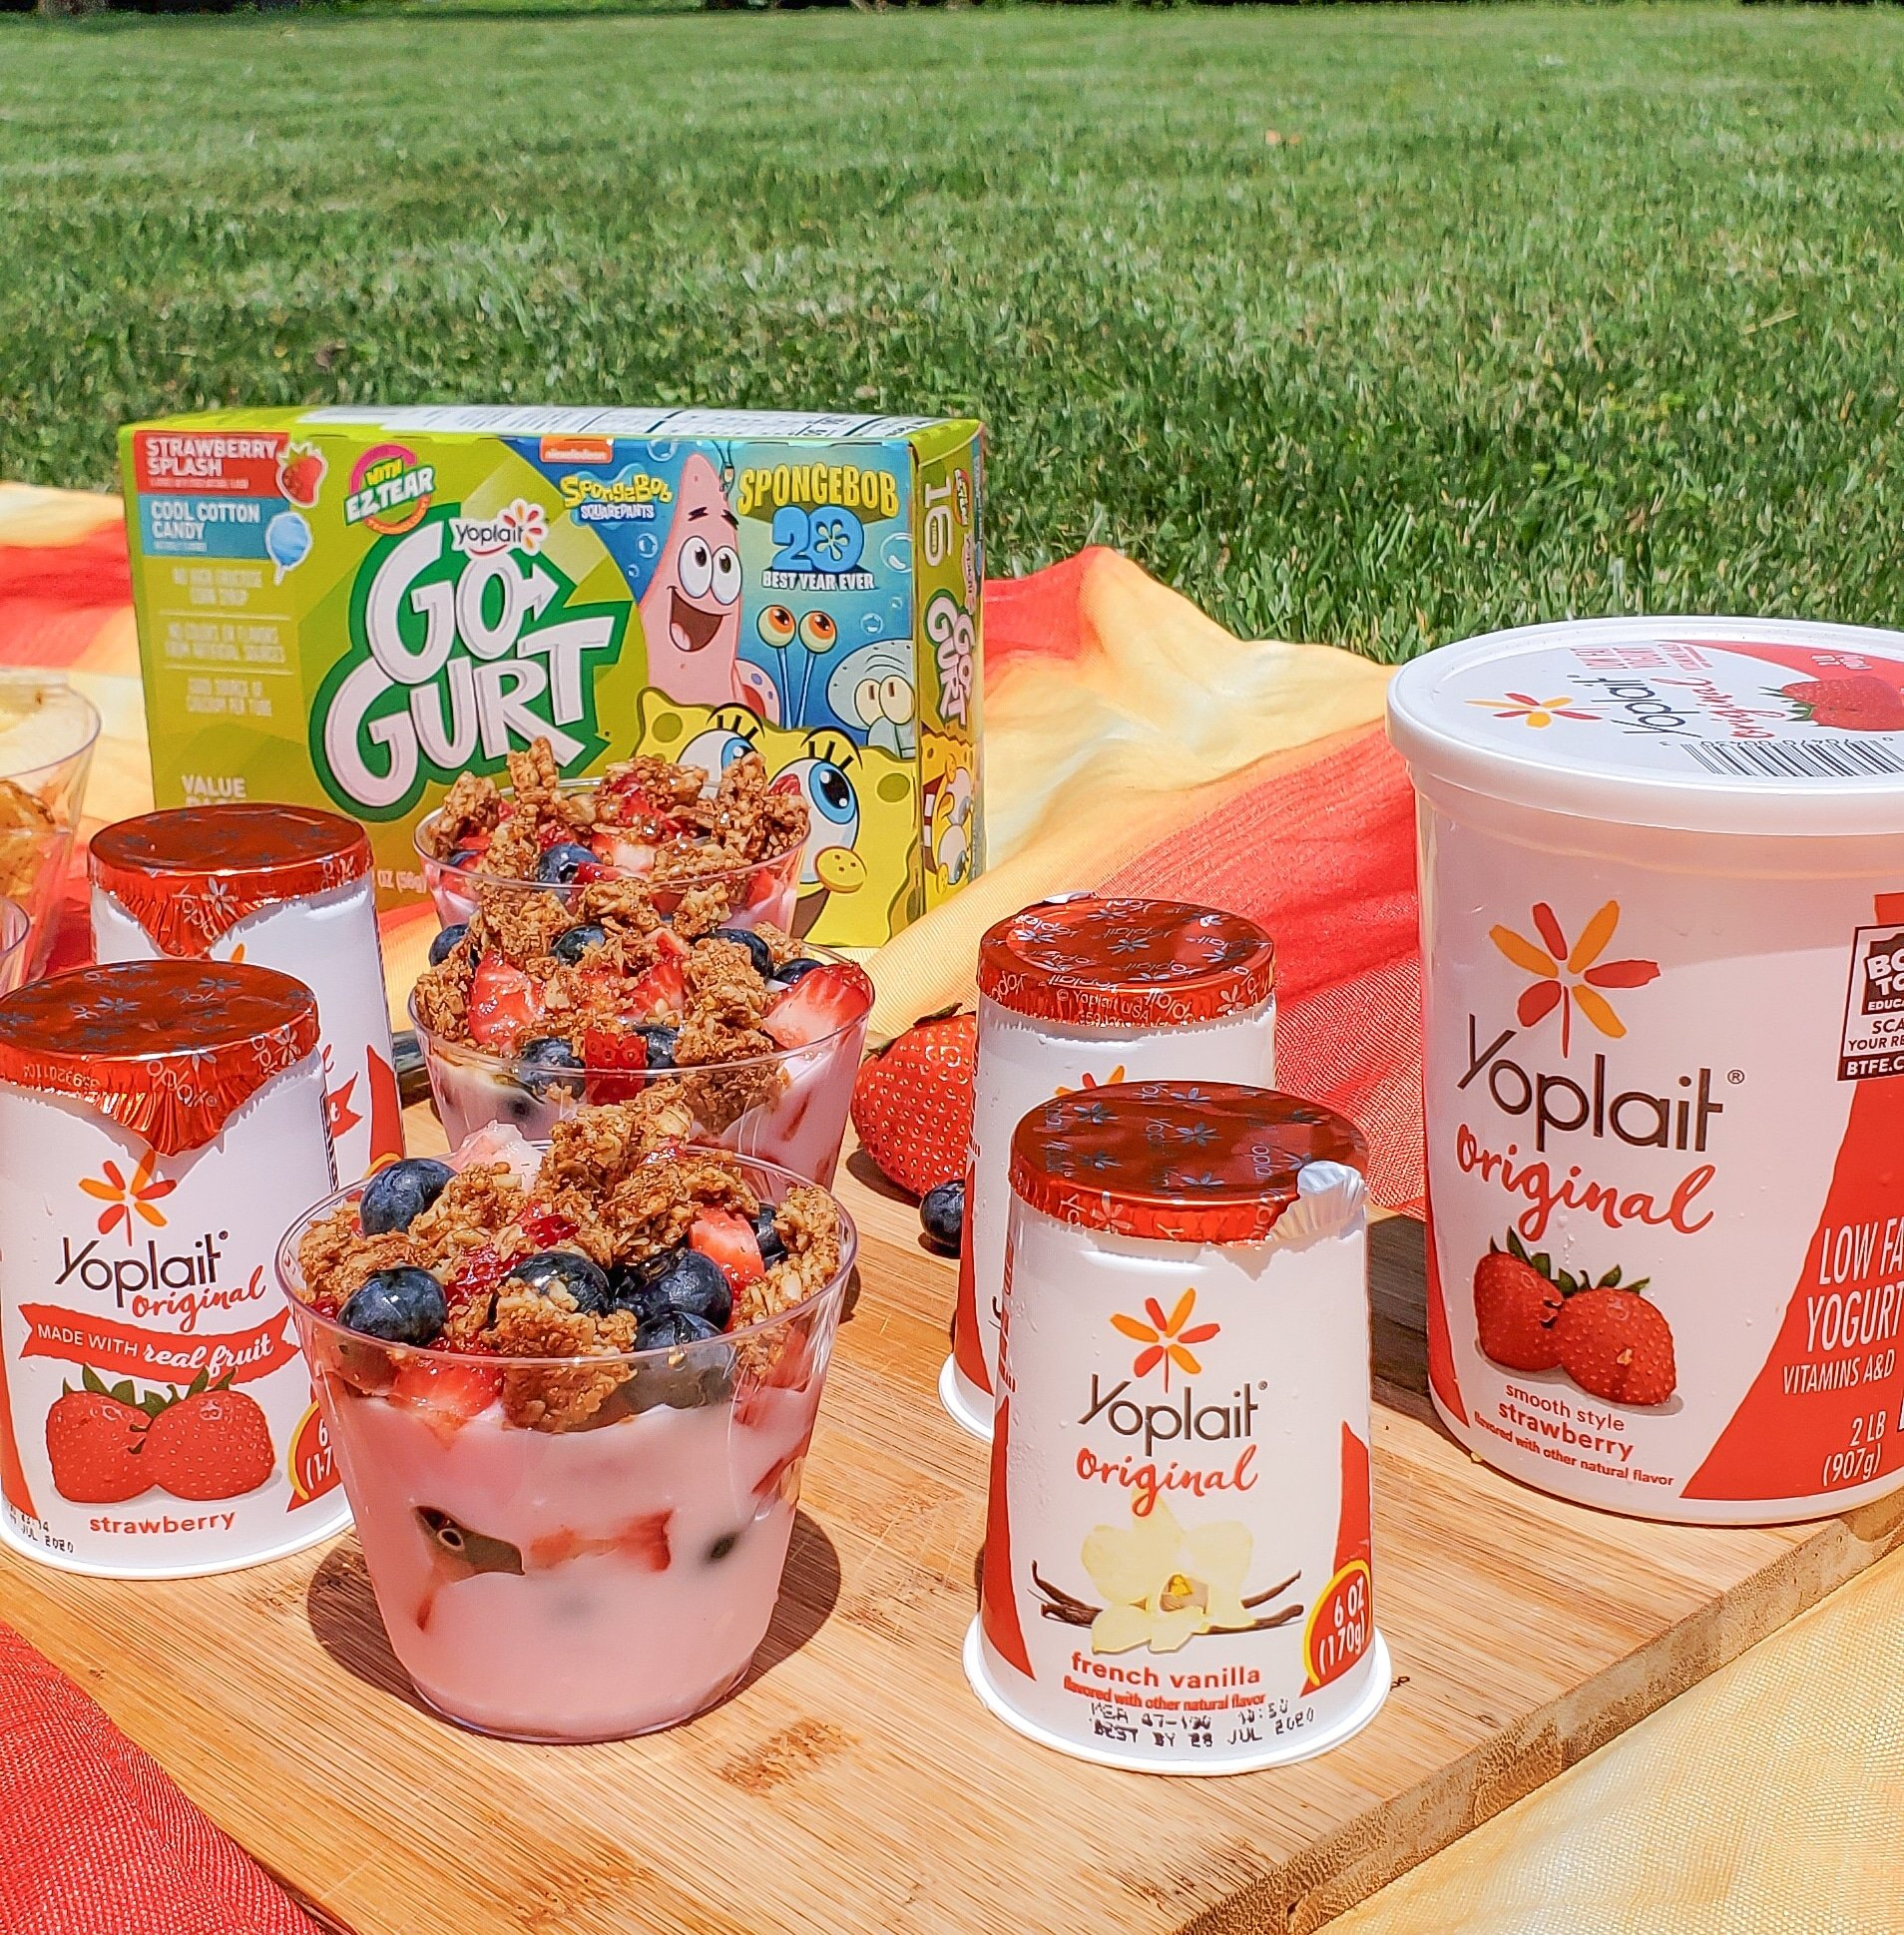 Backyard Picnic with Yoplait on Blanket. Grab your picnic baskets! It's time to host your very own backyard picnic featuring the foods your family loves. No need to leave home for this bunch of fun, just pick a date and then prep your picnic baskets.